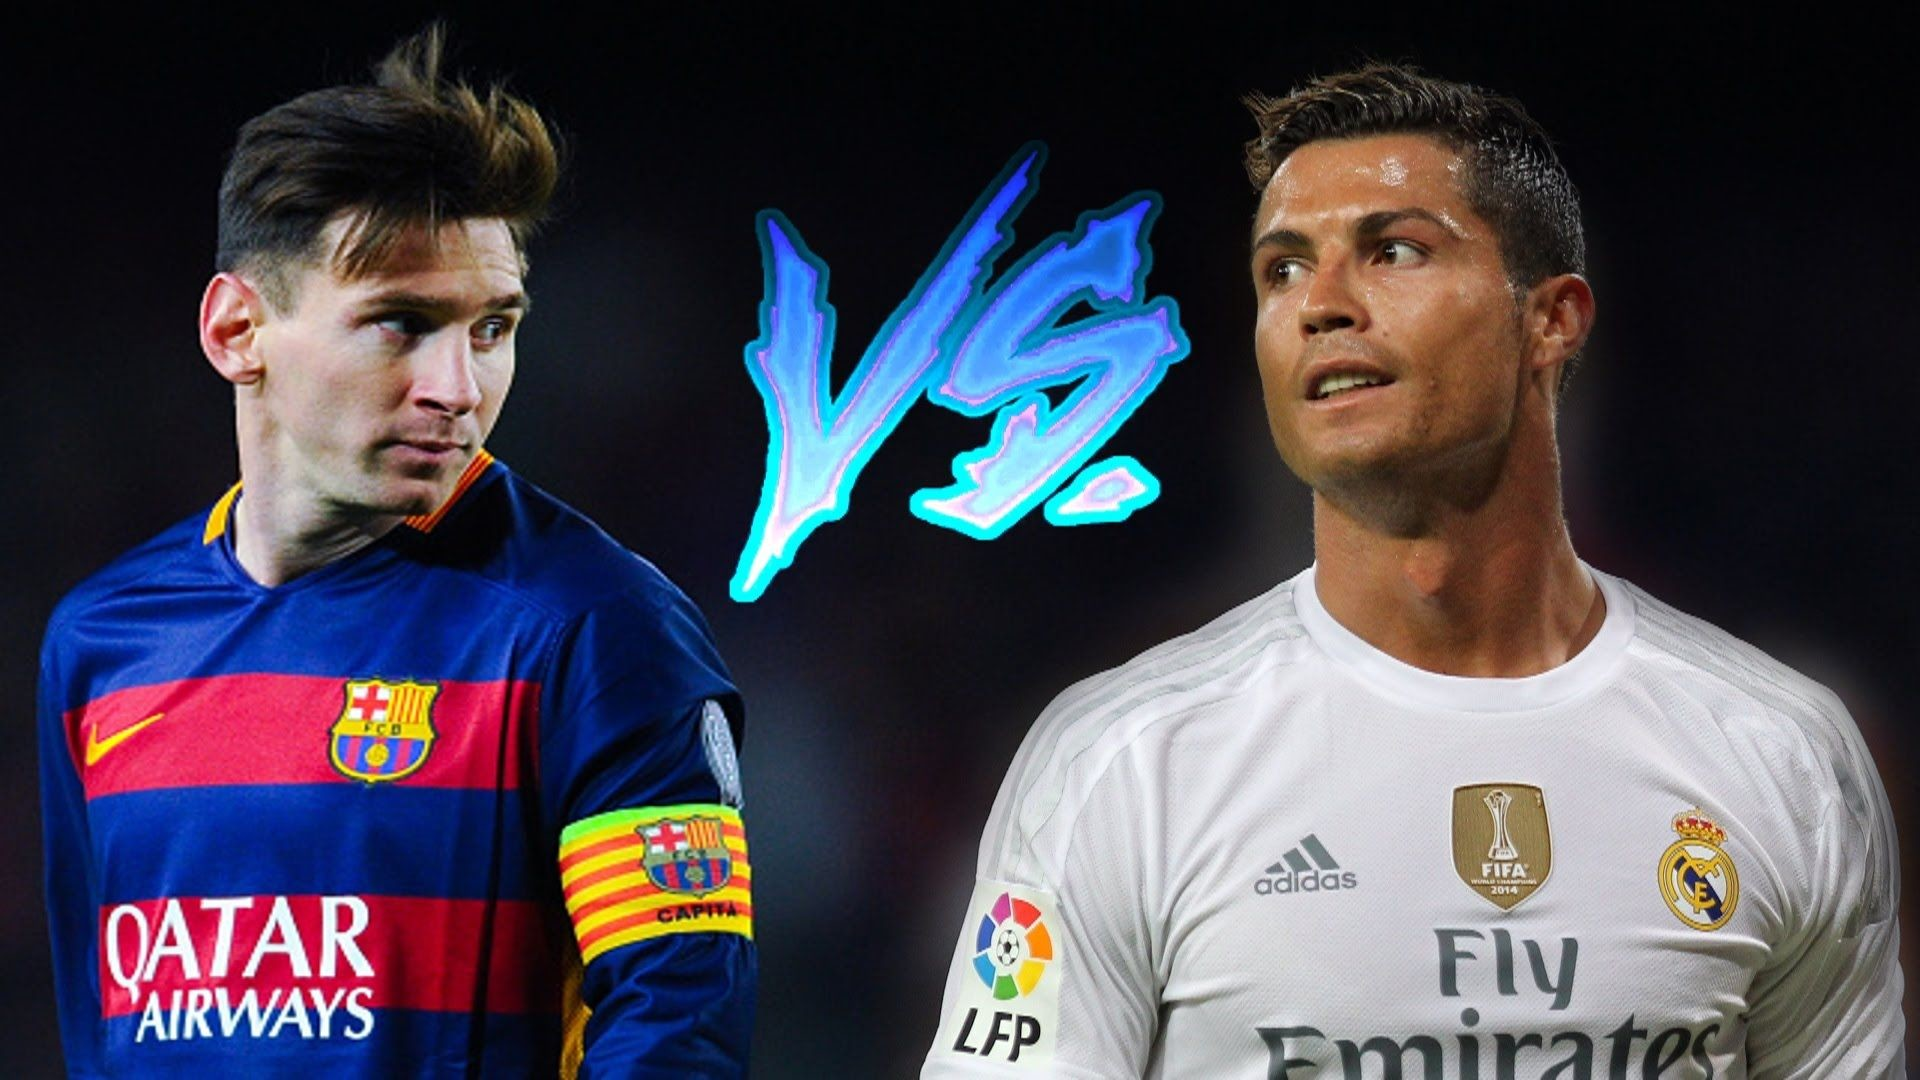 1920x1080 Cristiano Ronaldo vs Lionel Messi 2017 _ 2015_17 - Best Skills & Goals |  Football Tricks | Pinterest | Lionel messi, Football tricks and Cristiano  ronaldo